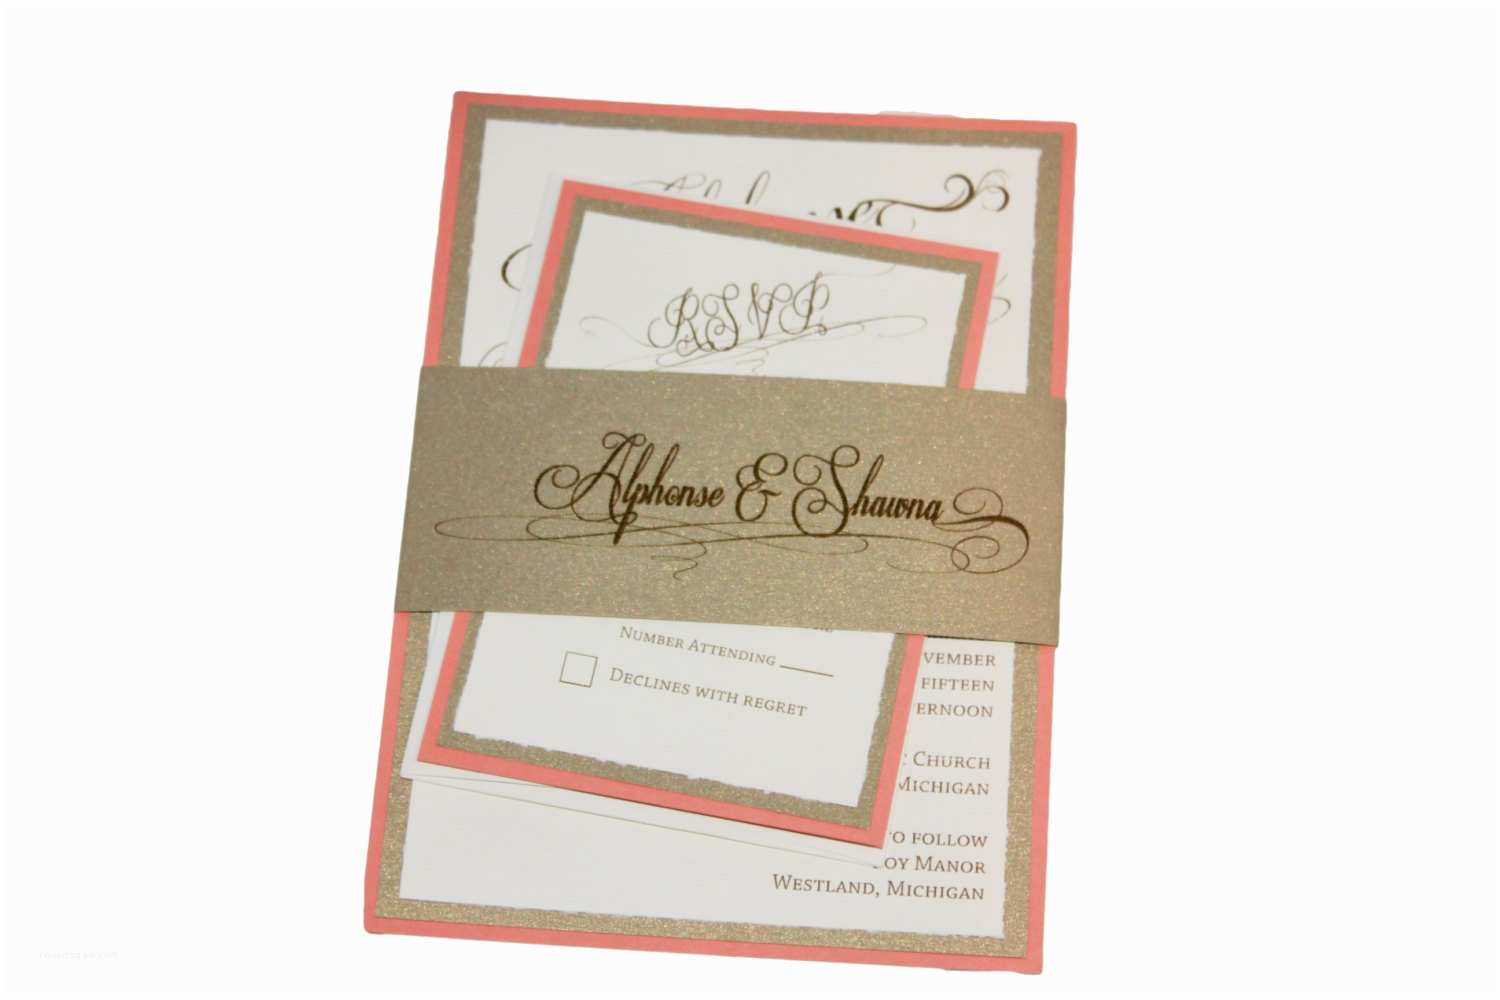 Coral and Gold Wedding Invitations Coral Gold and Cream Wedding Invitation Peach and by